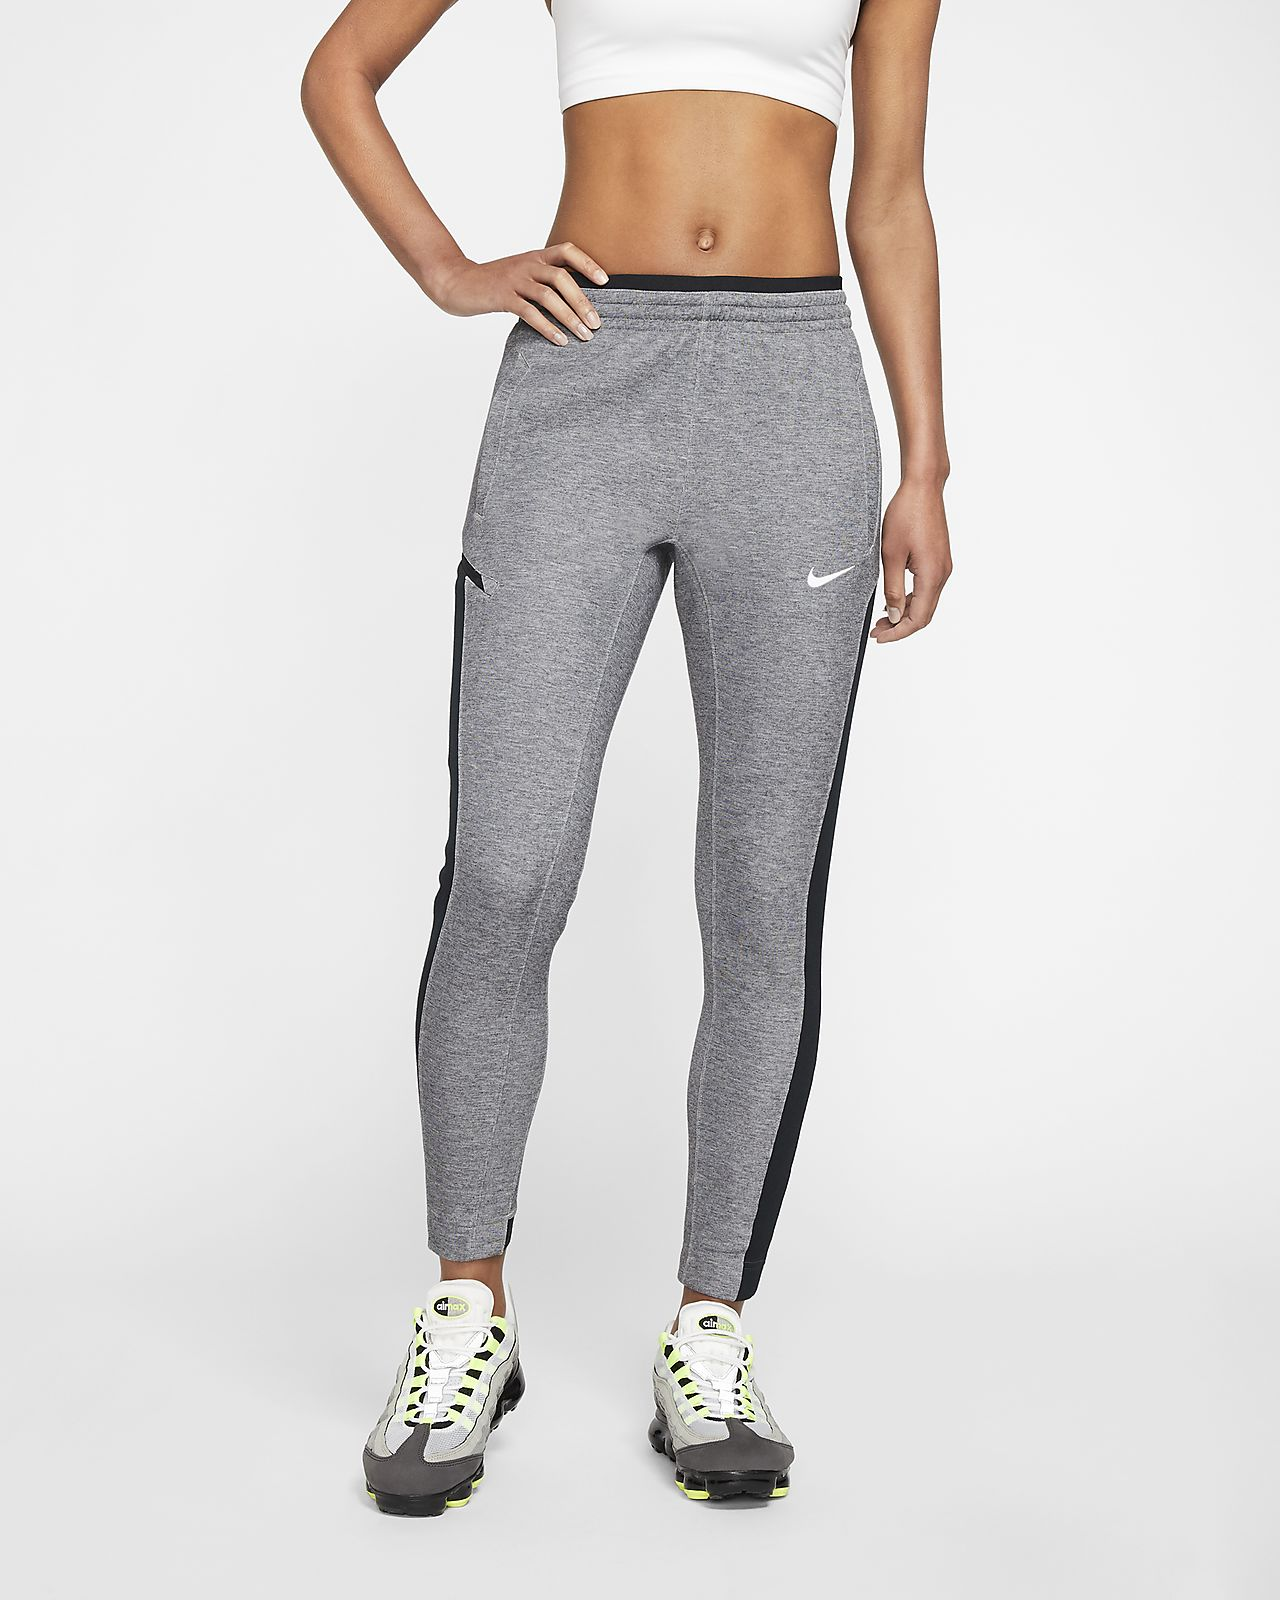 Nike Dri-FIT Showtime Women's Basketball Pants (Stock)